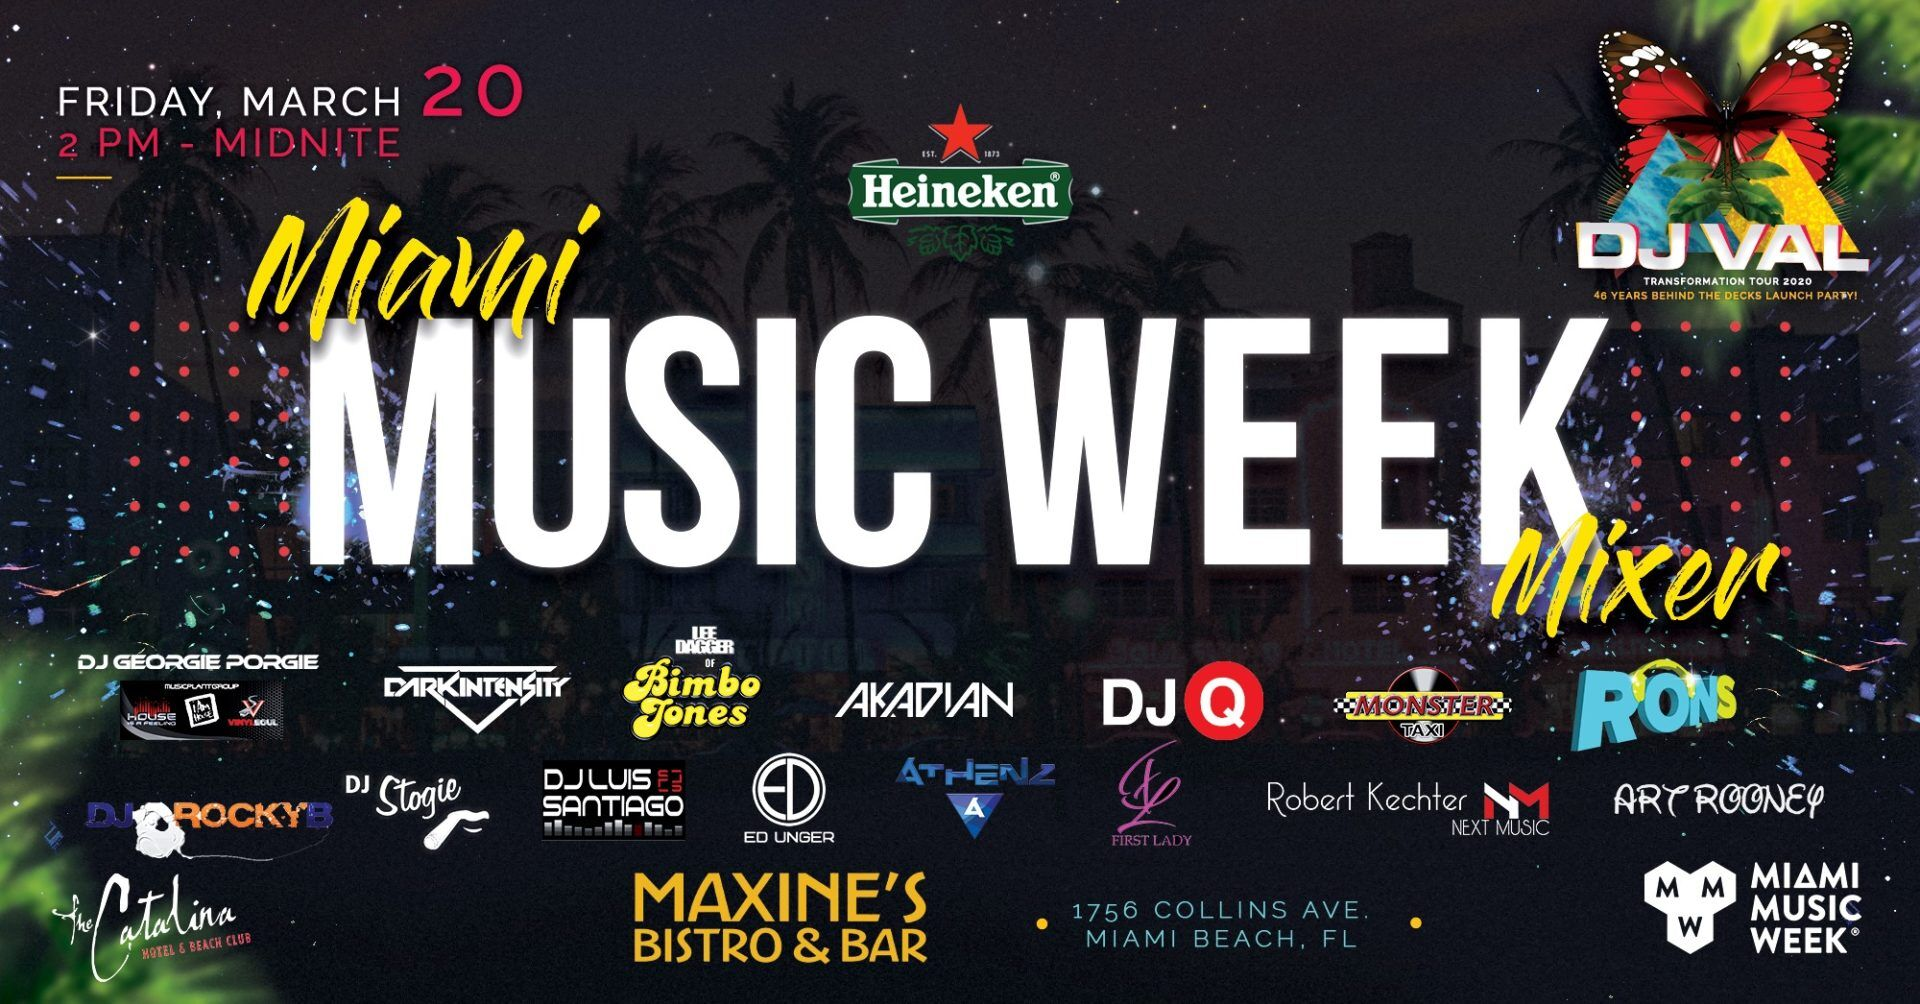 miami music week mixer